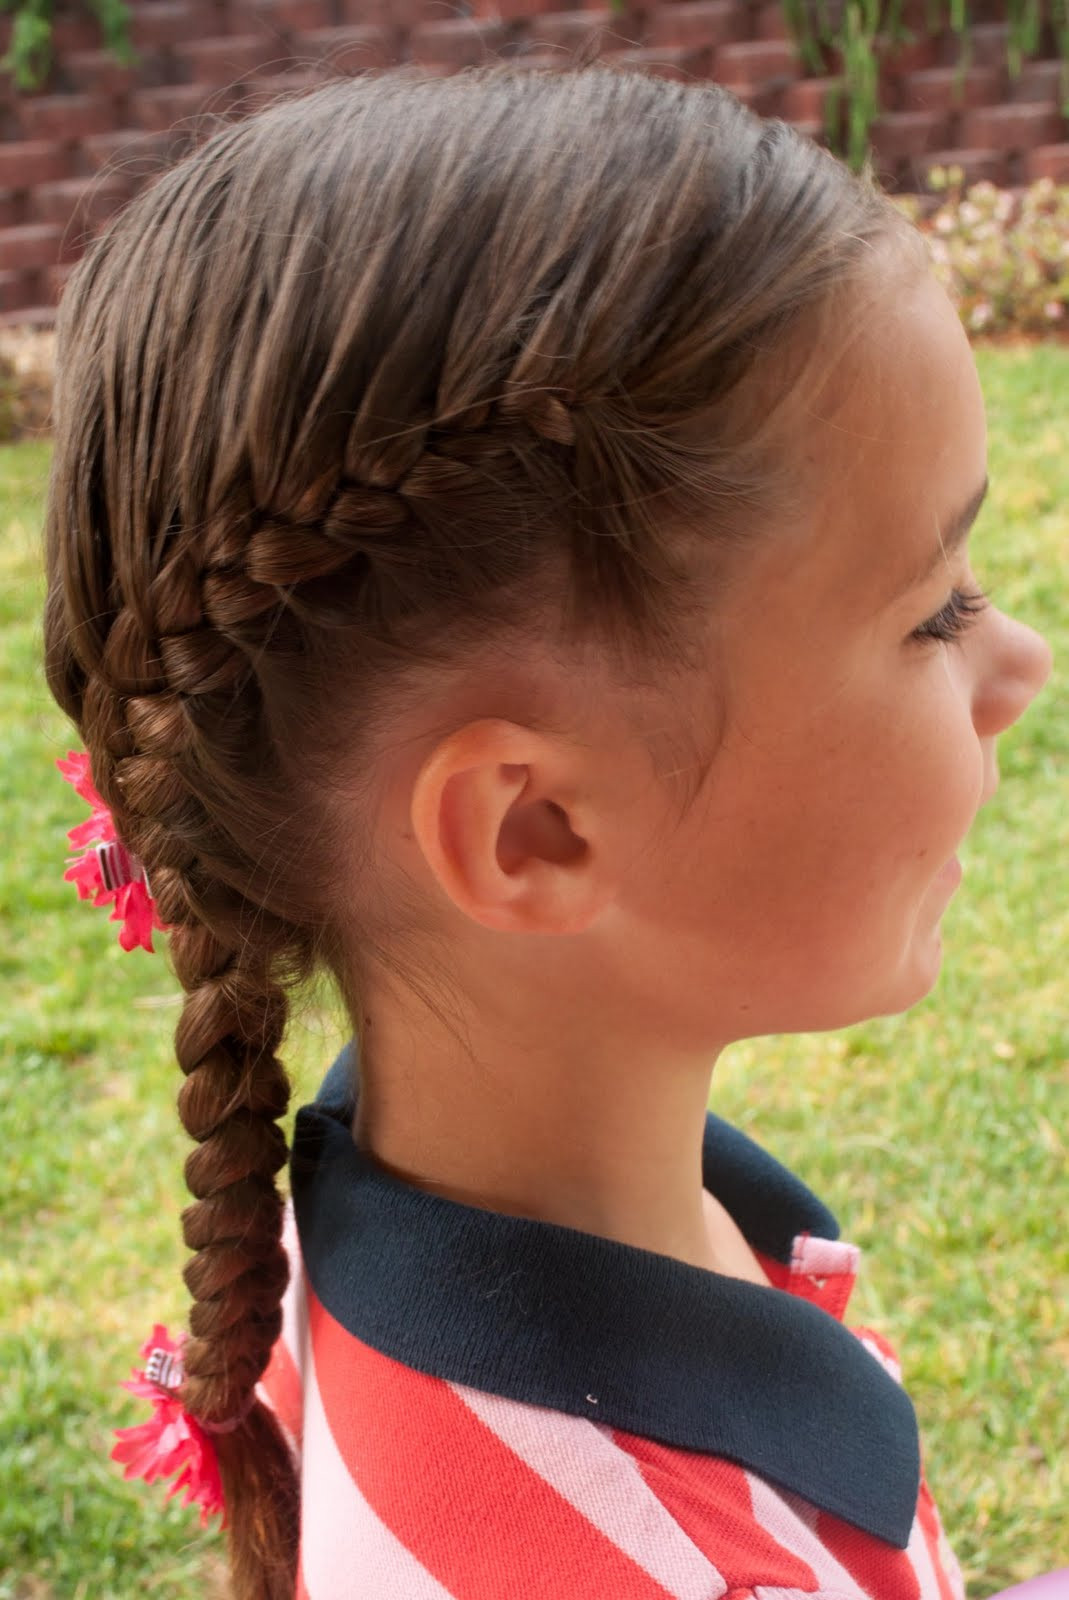 Best ideas about Children Hairstyles Braids . Save or Pin 20 Hairstyles for Kids with MagMent Now.